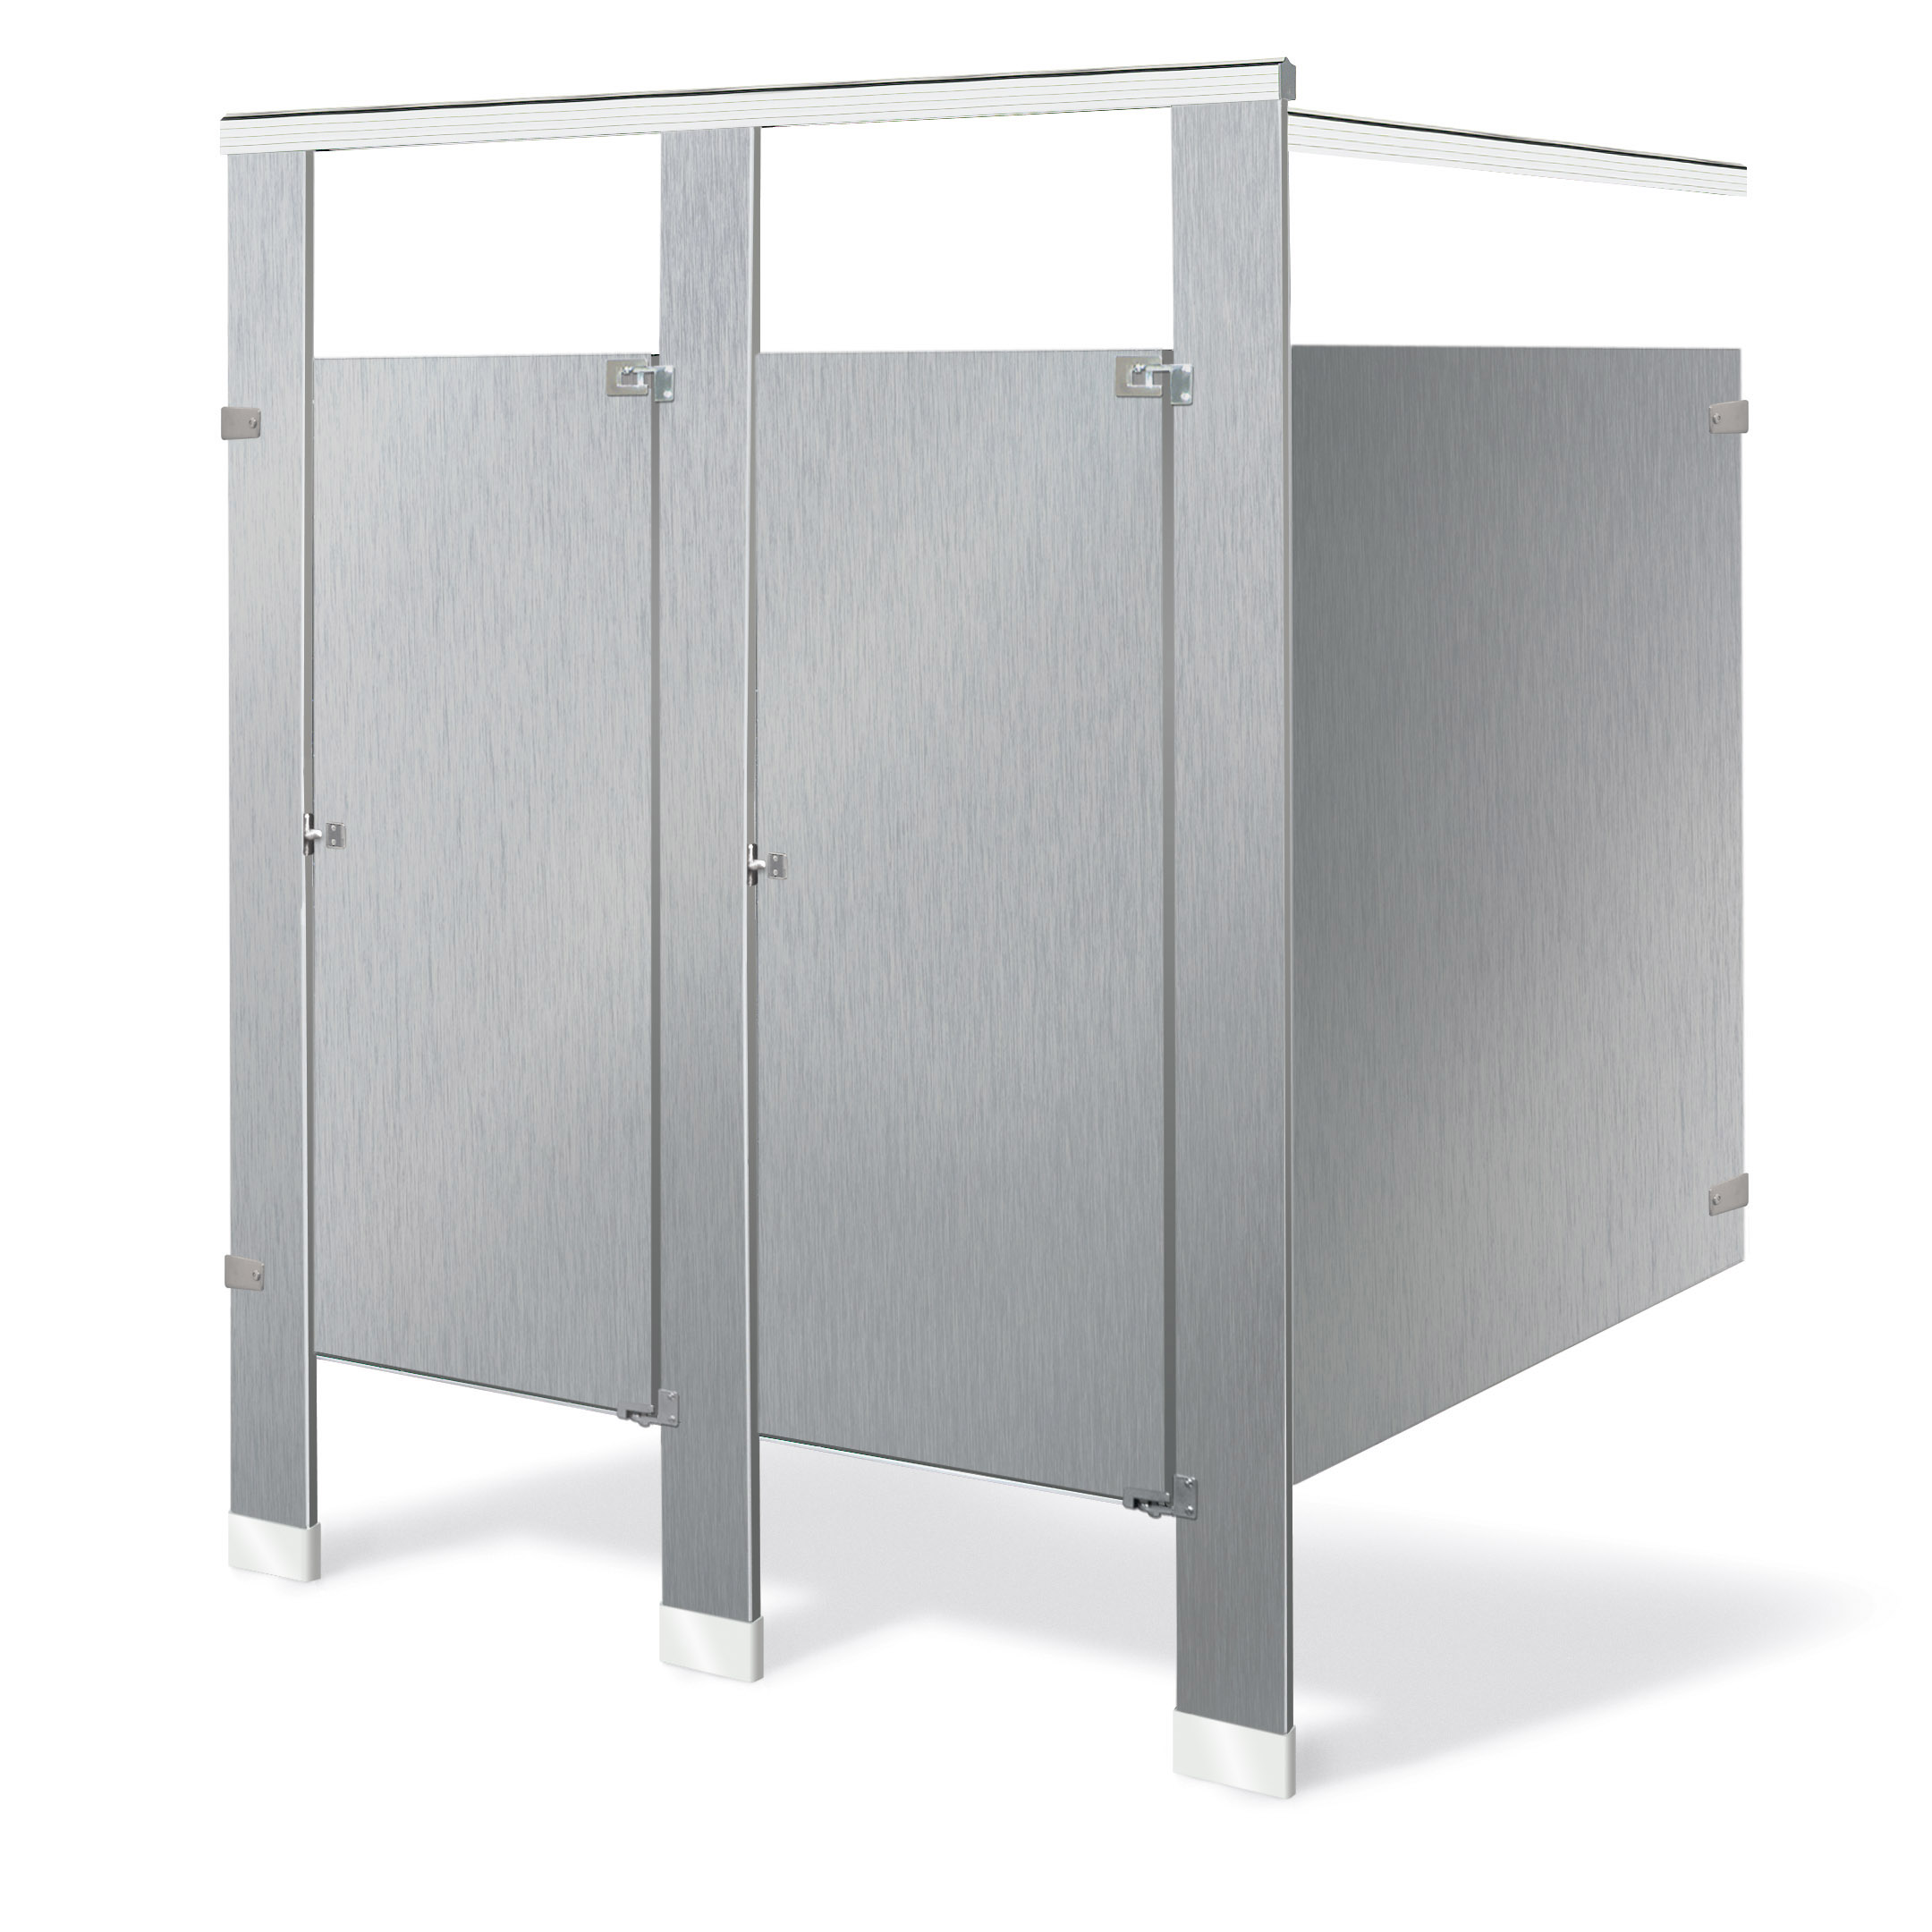 Bathroom Partition scranton products toilet partitions Sentinel Floor Mounted Overhead Braced Series 400 Stainless Steel Bathroom Partitions